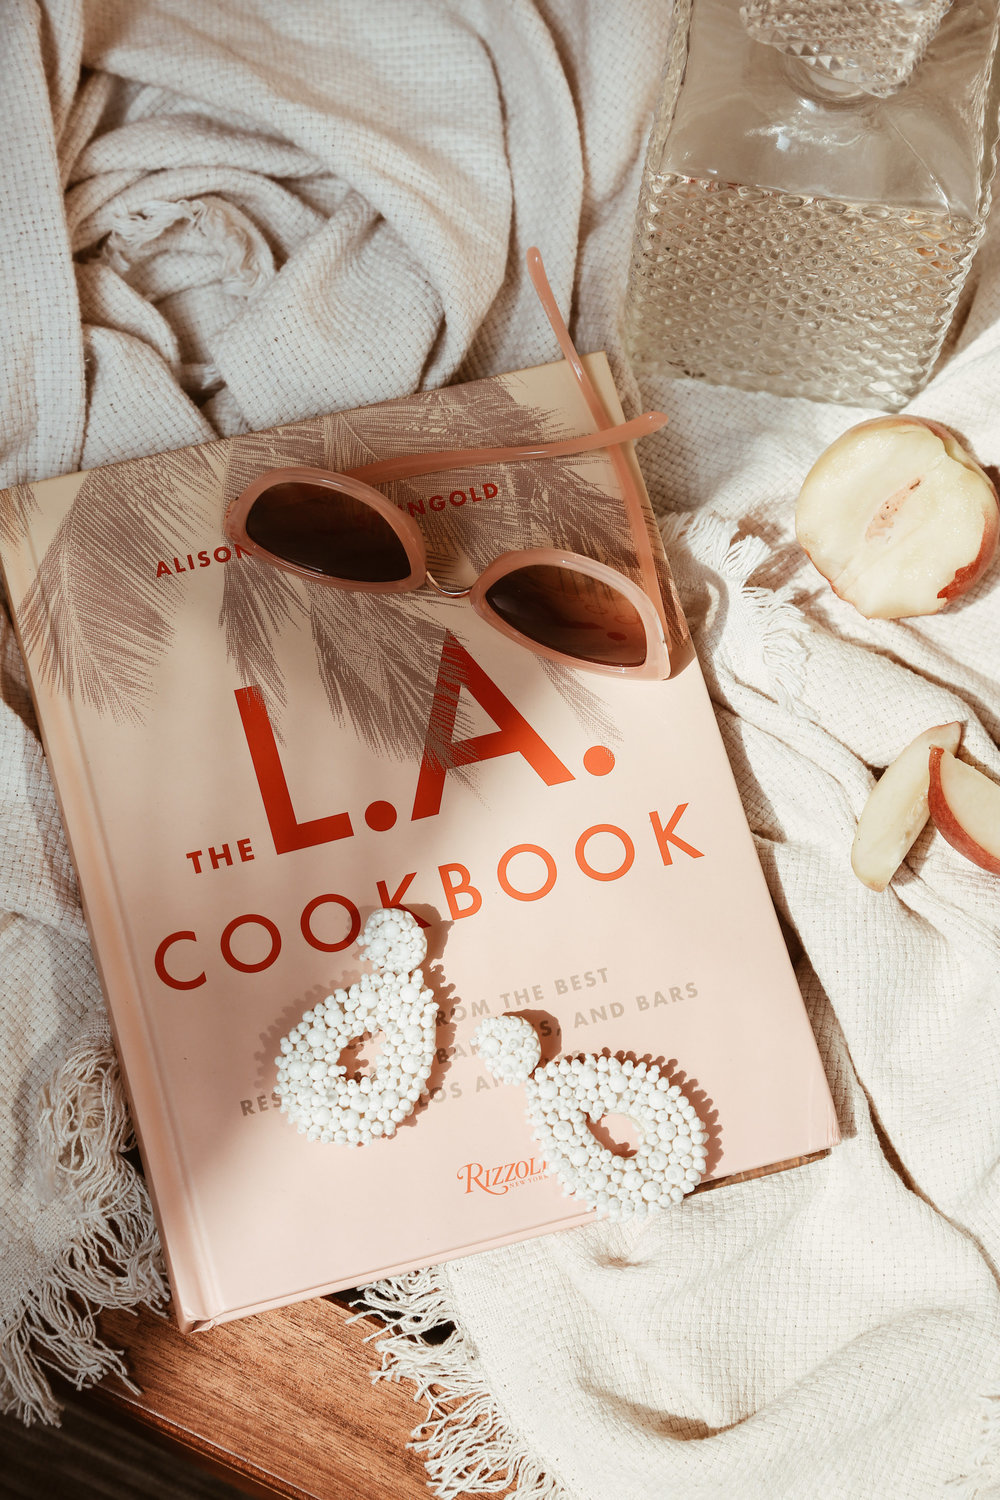 The la-cookbook.jpg